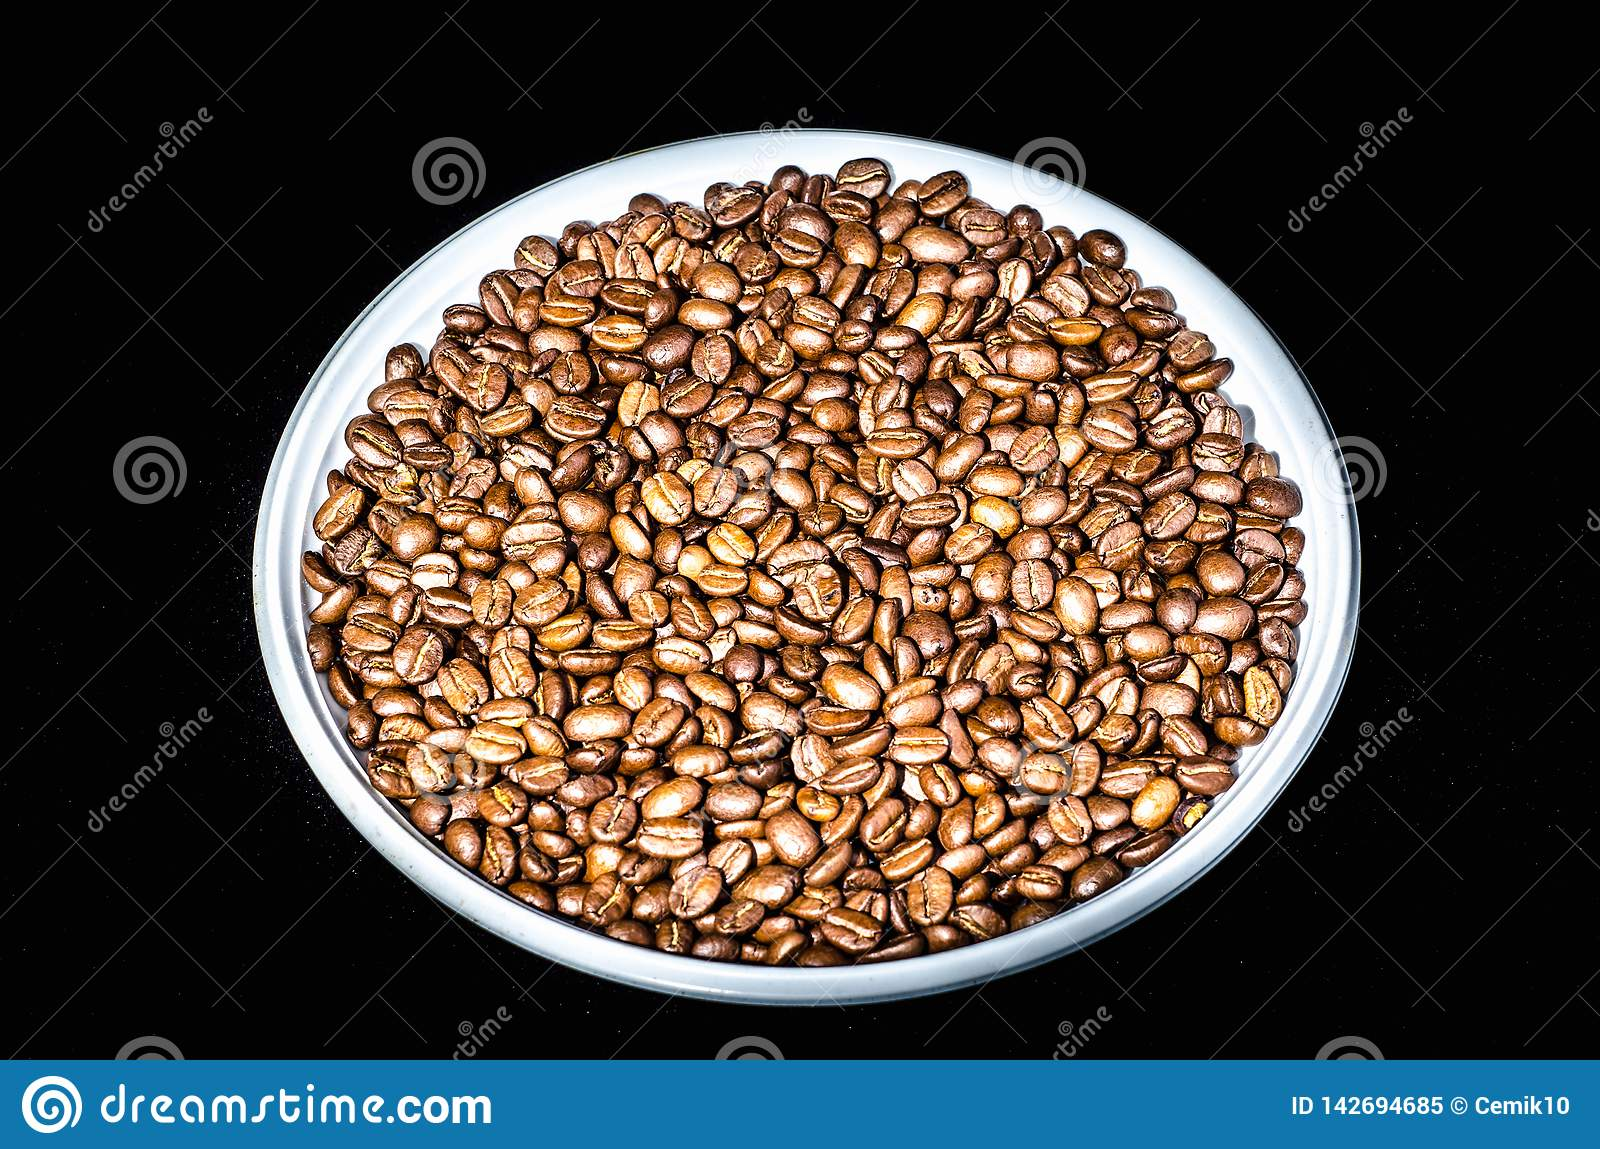 Coffee beans on a round plate close up. Isolated on black background